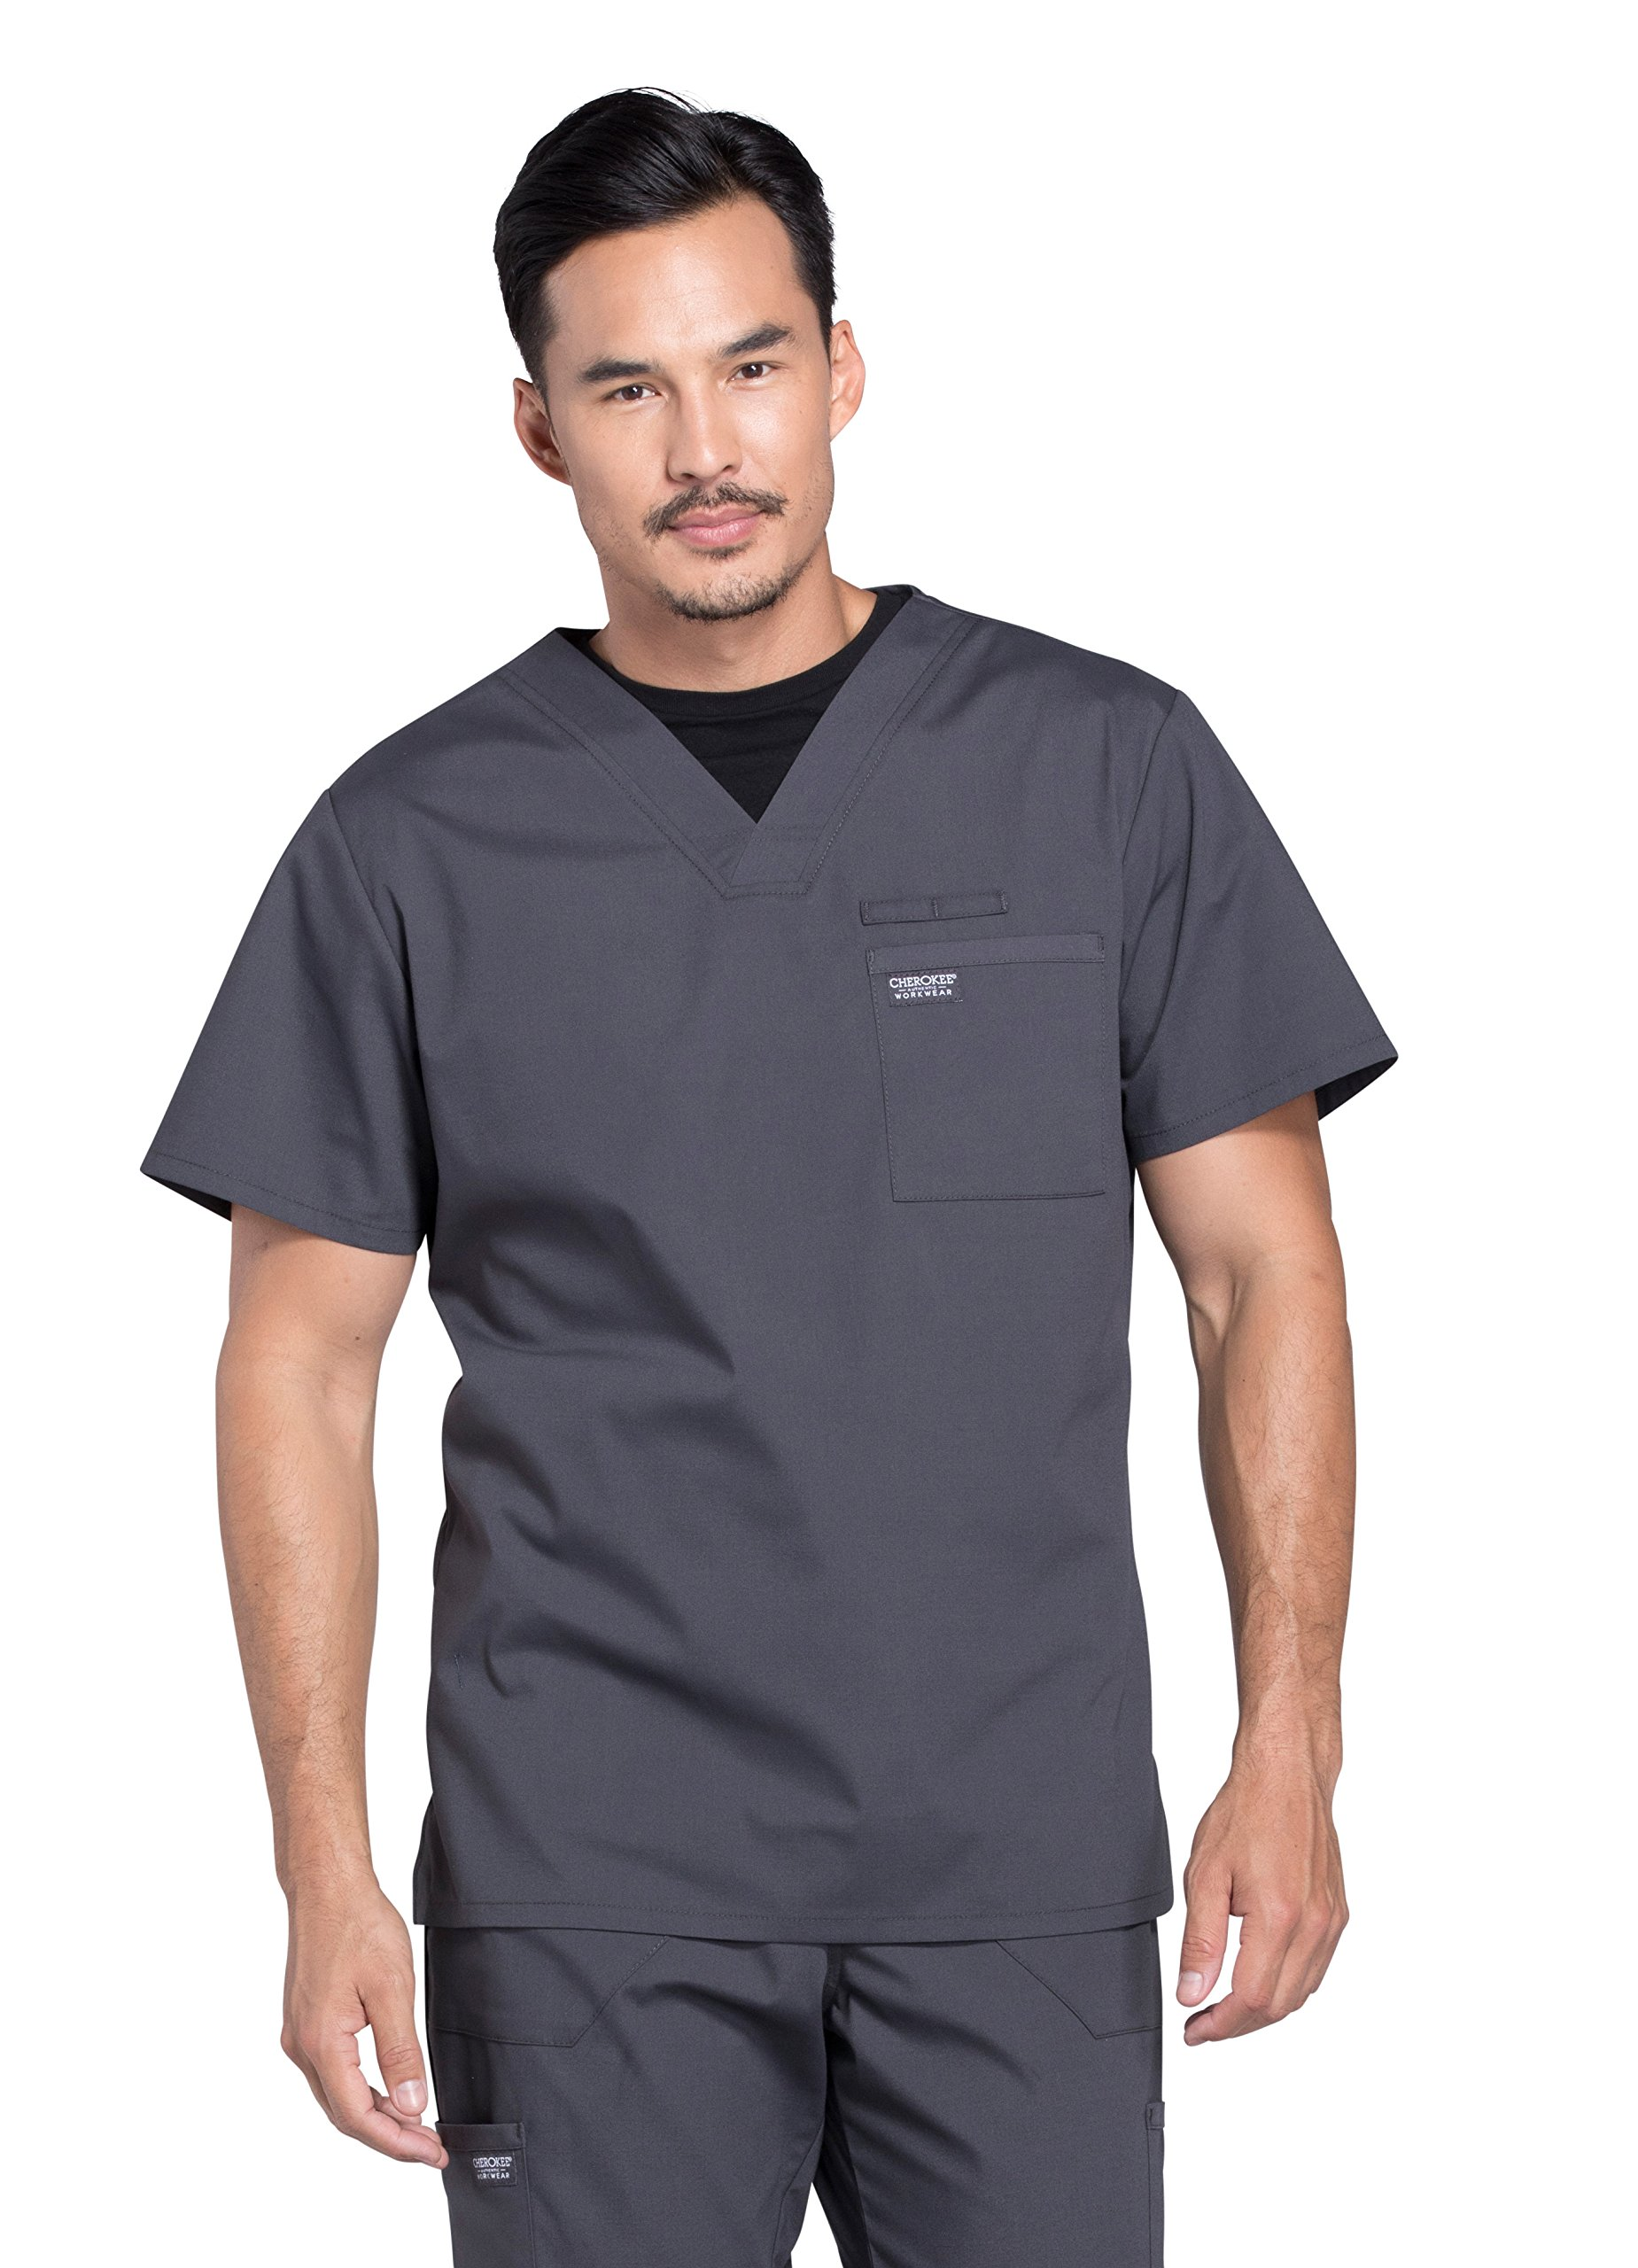 Cherokee Workwear Professionals WW675 Men's V-Neck Top- Pewter- X-Large